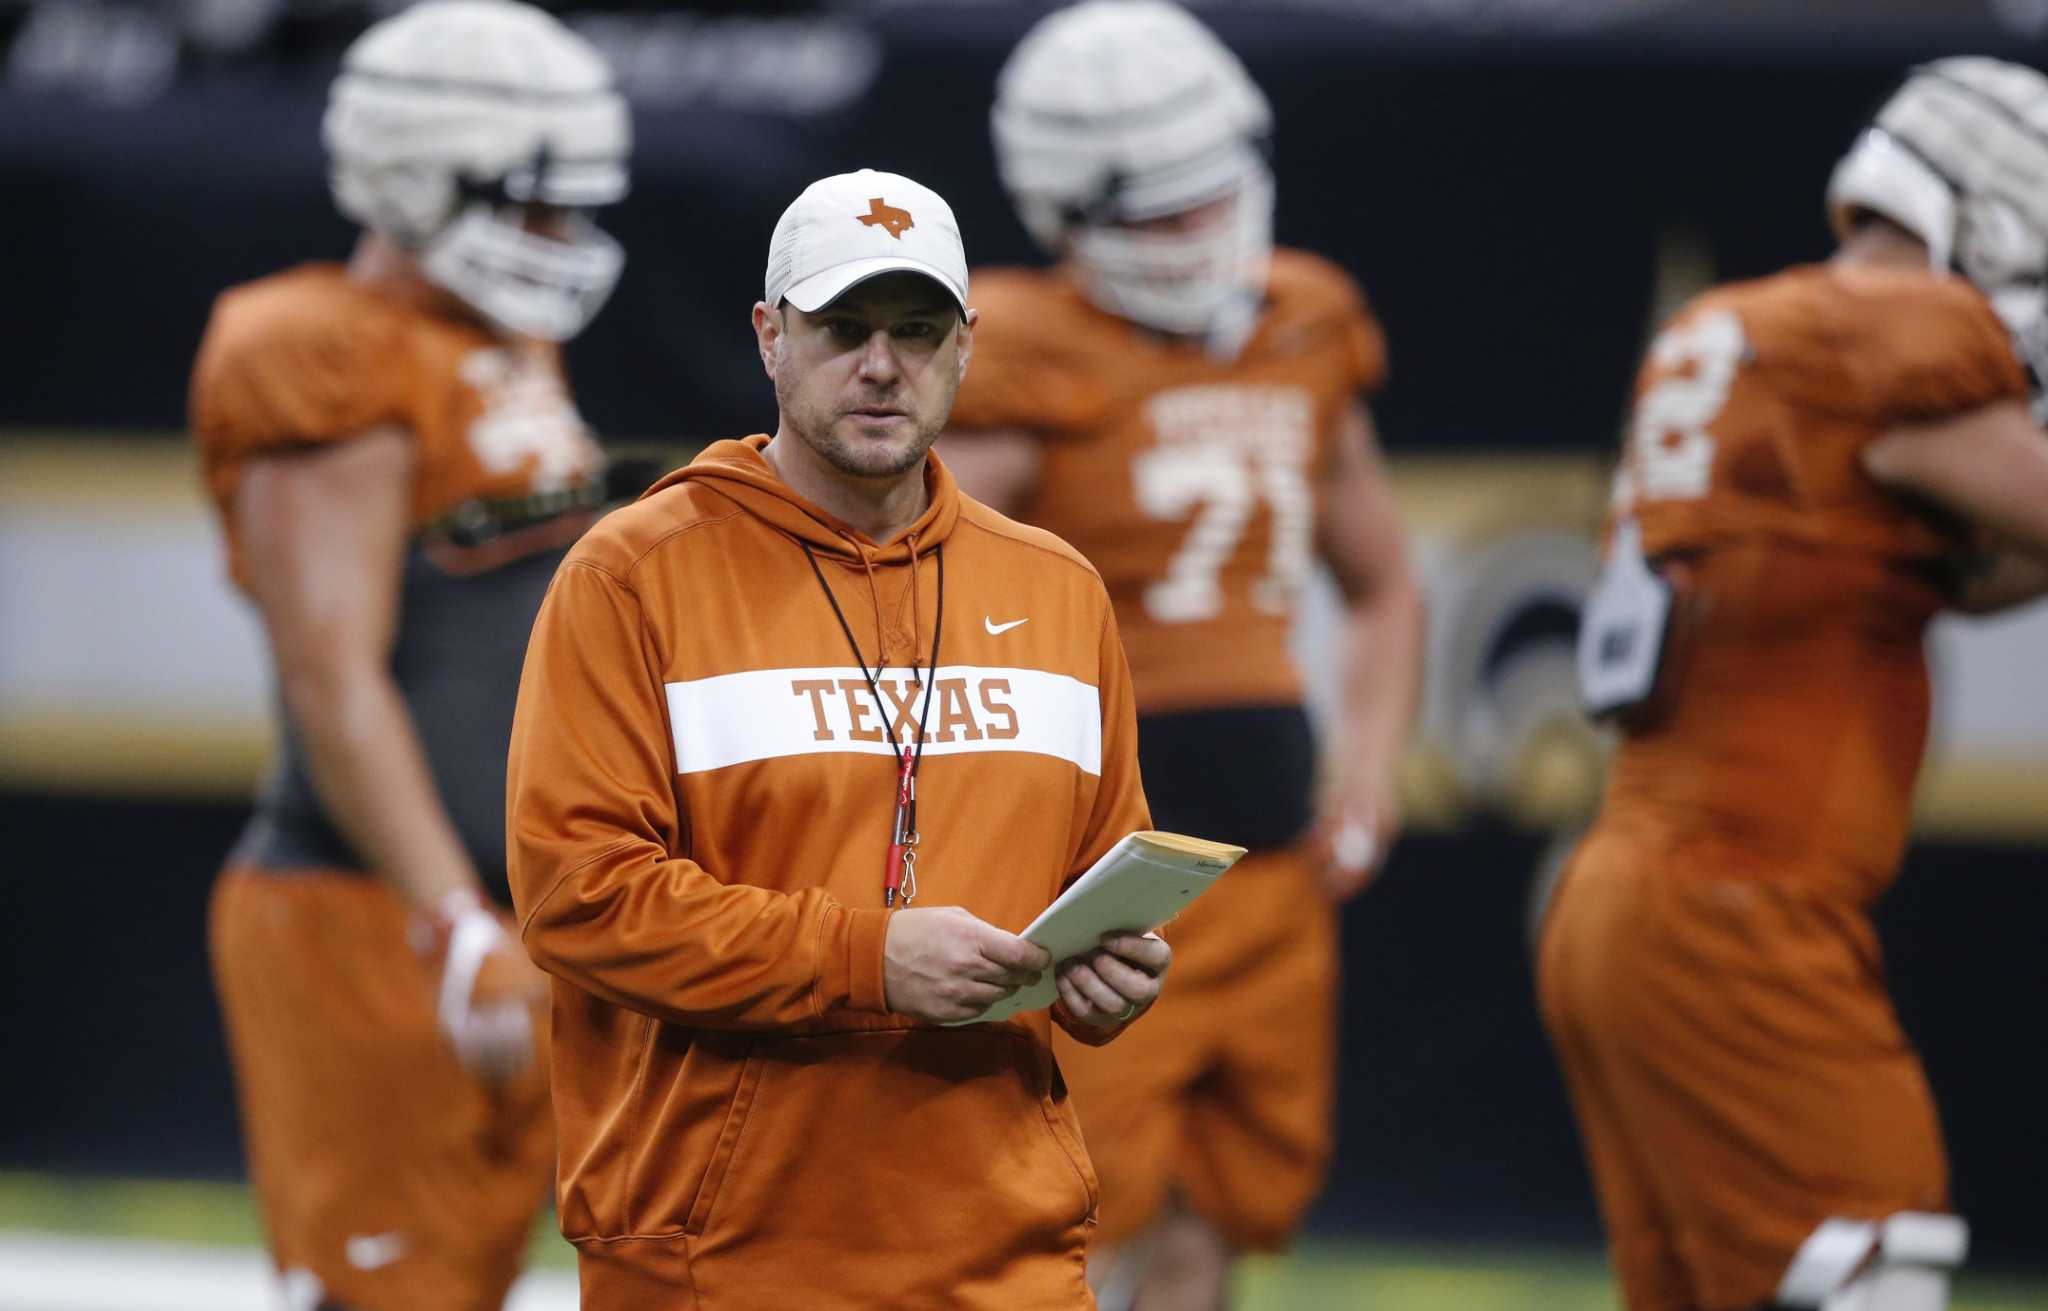 Texas coach Tom Herman set to receive 2-year contract extension